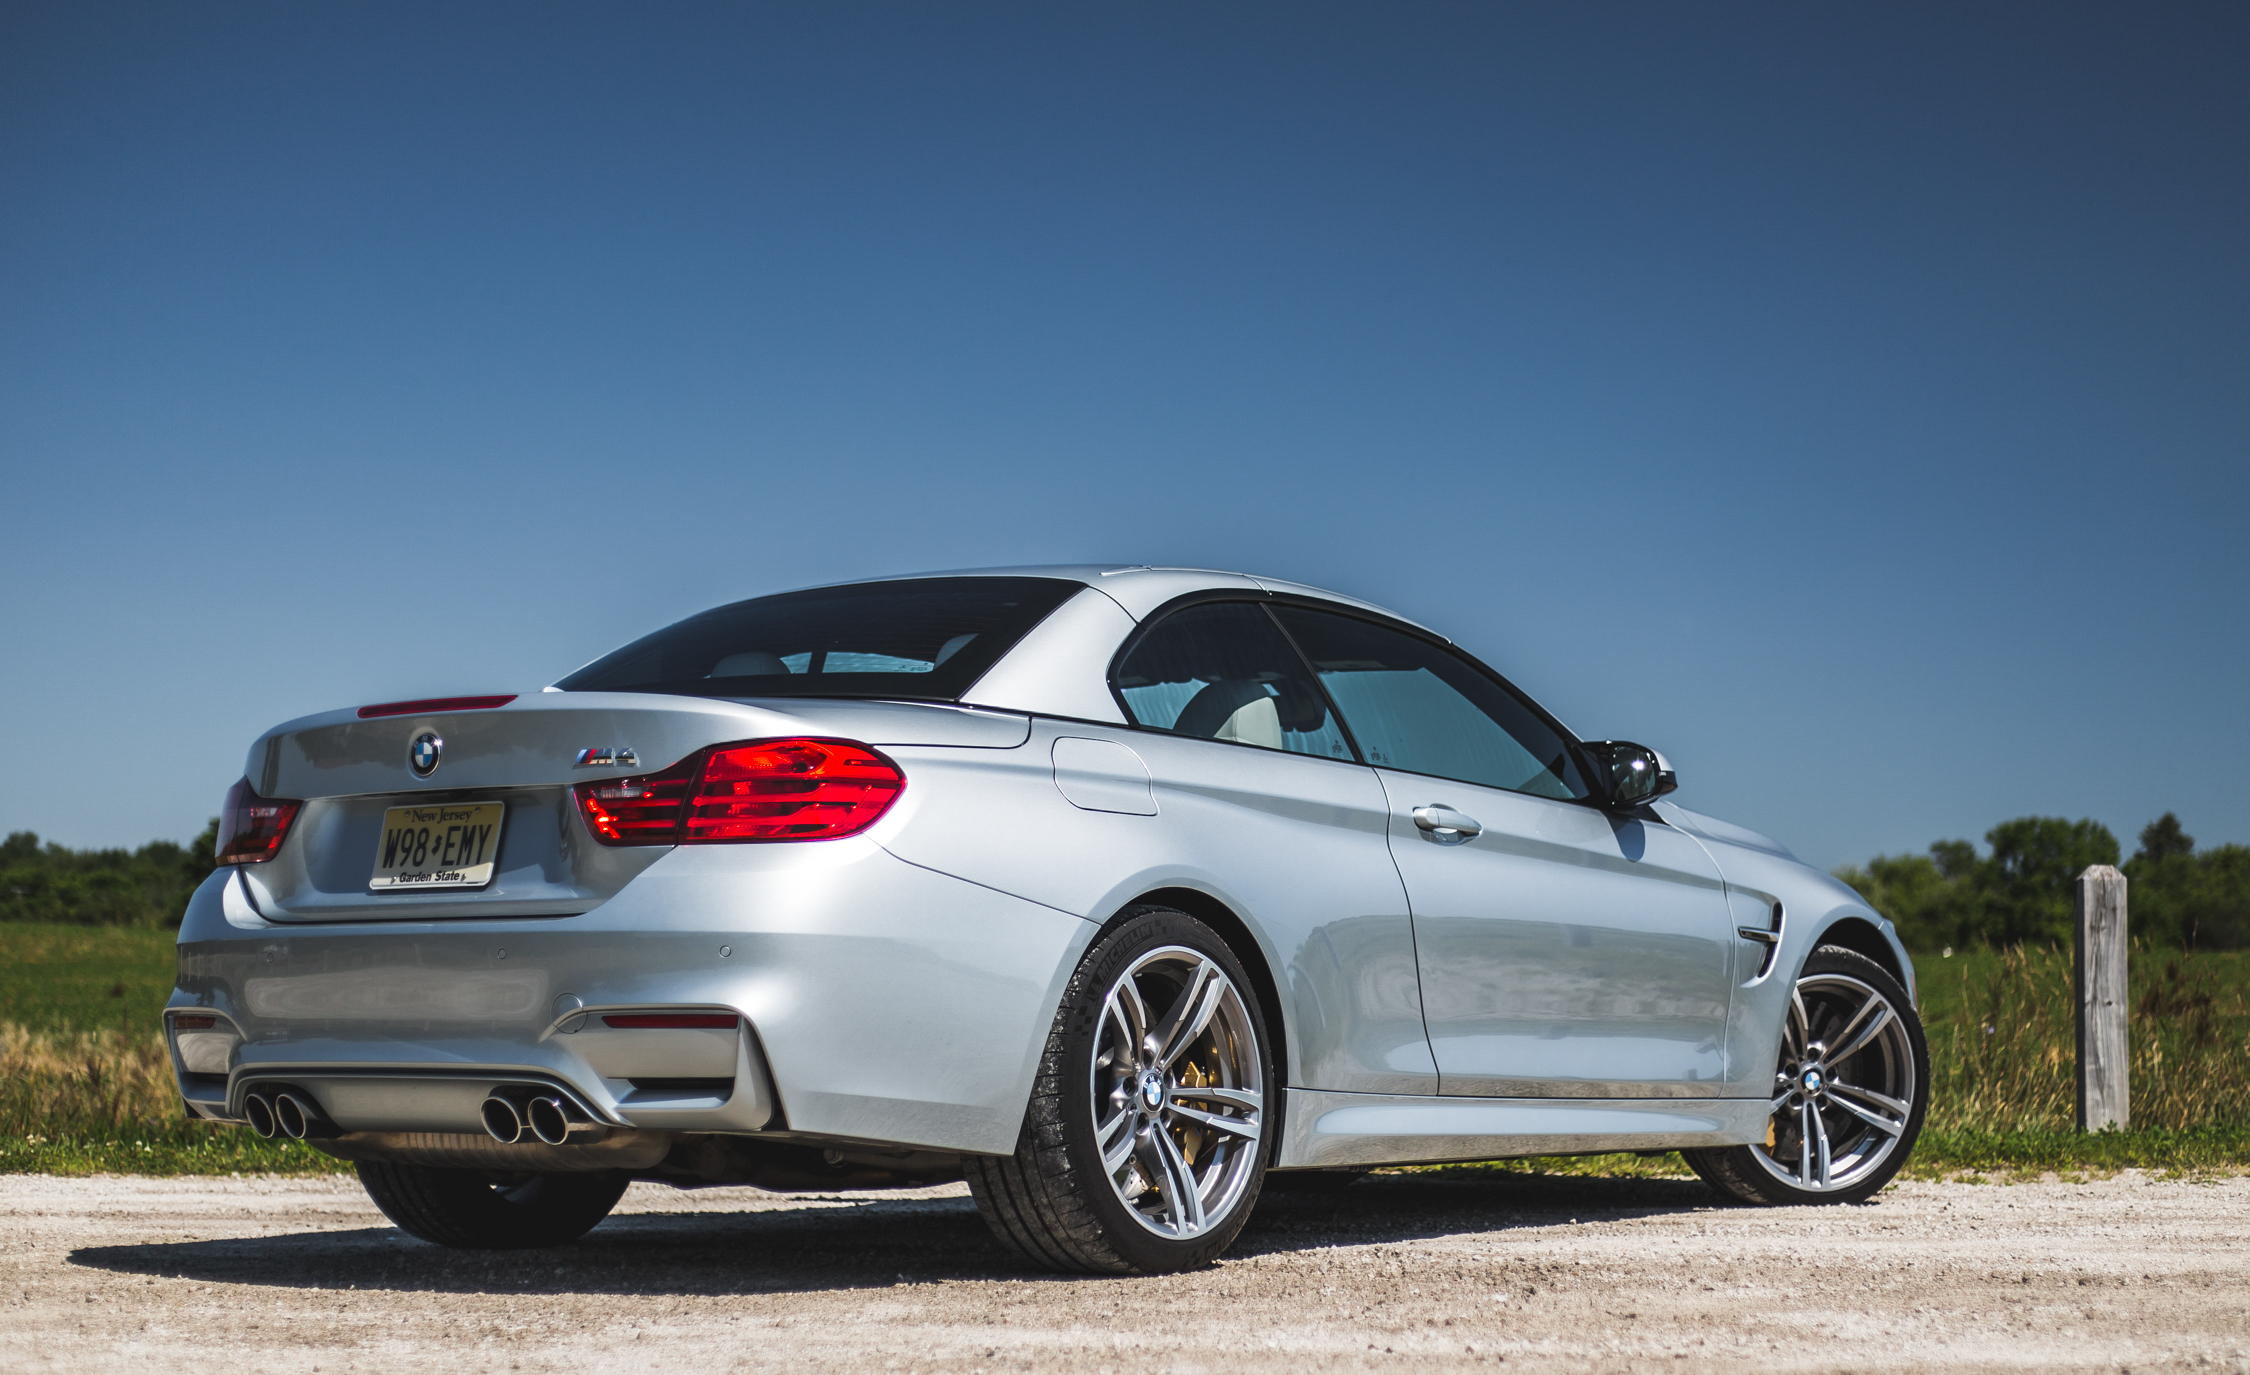 2015 BMW M4 Convertible Top Up Exterior Rear and Side